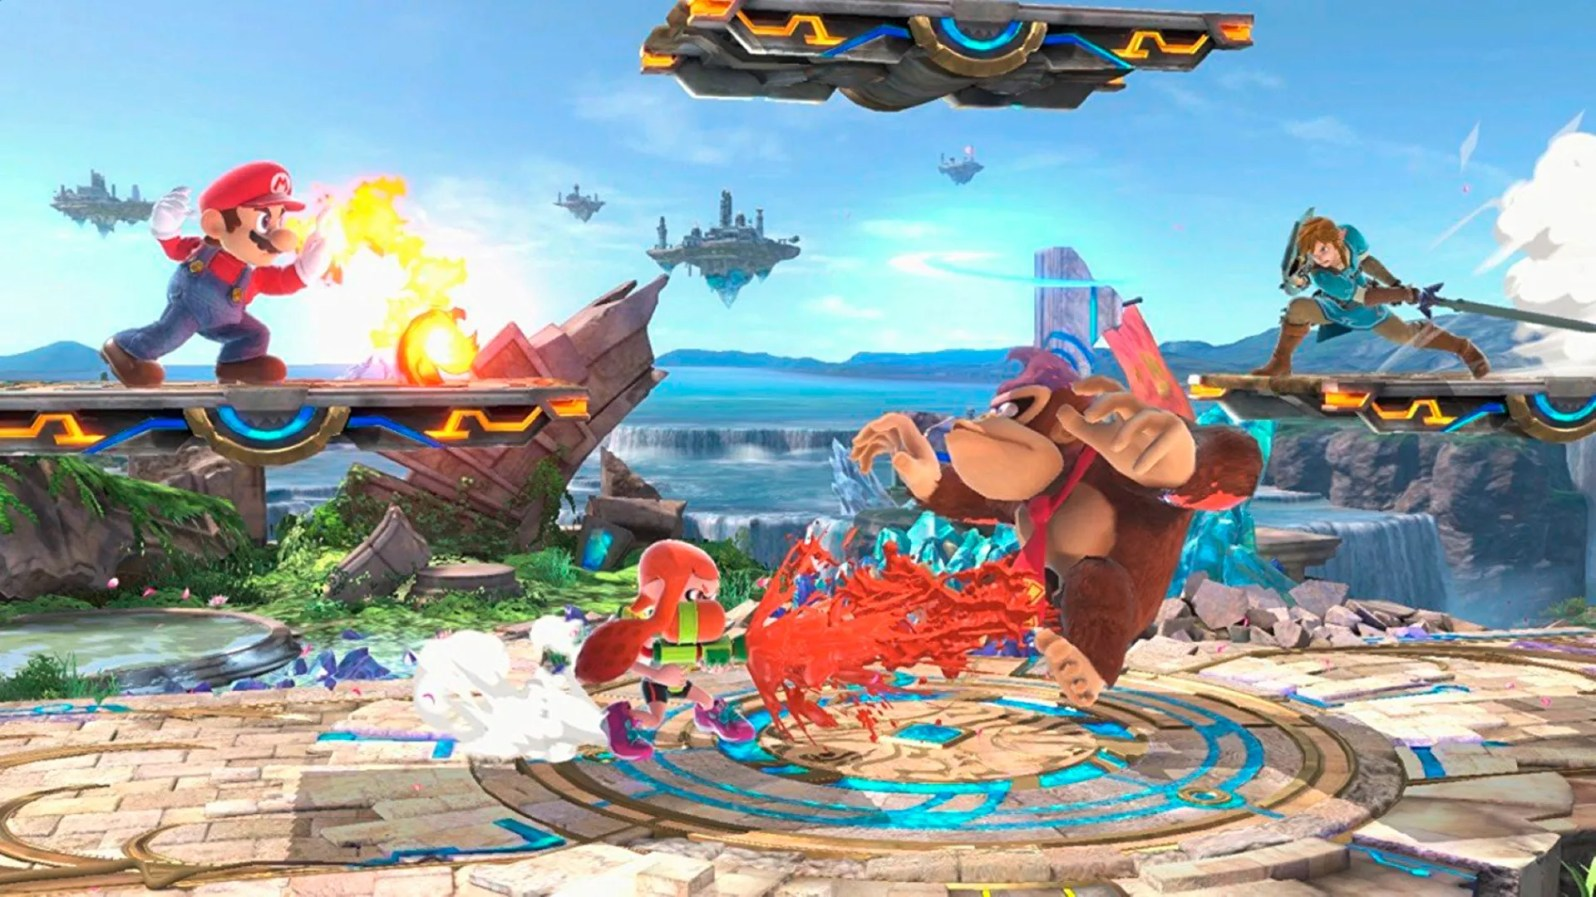 Quelle: Amazon/Nintendo - Super Smash Bros. Ultimate